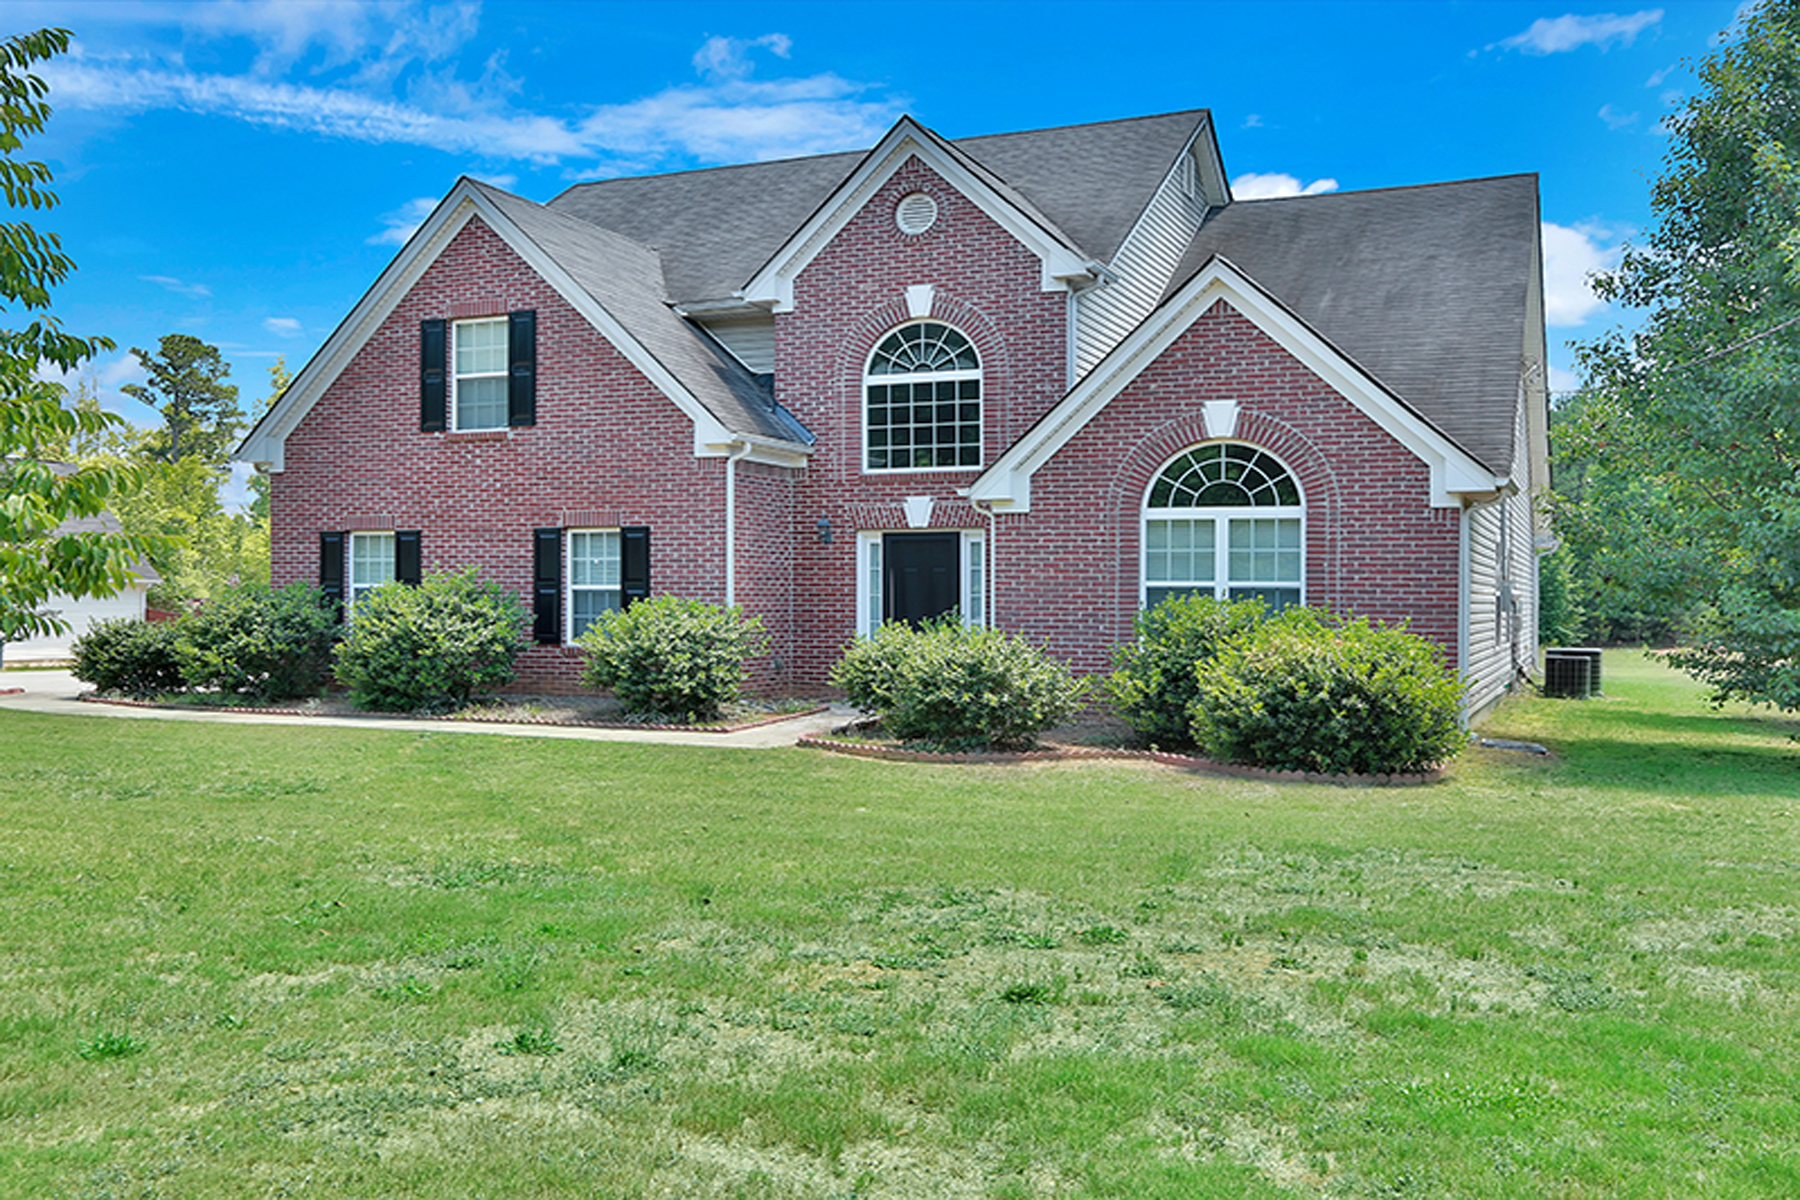 Single Family Home for Sale at Beautiful 5 Bedroom Home on 1.6 Acres 2038 Standing Rock Road Senoia, Georgia, 30276 United States